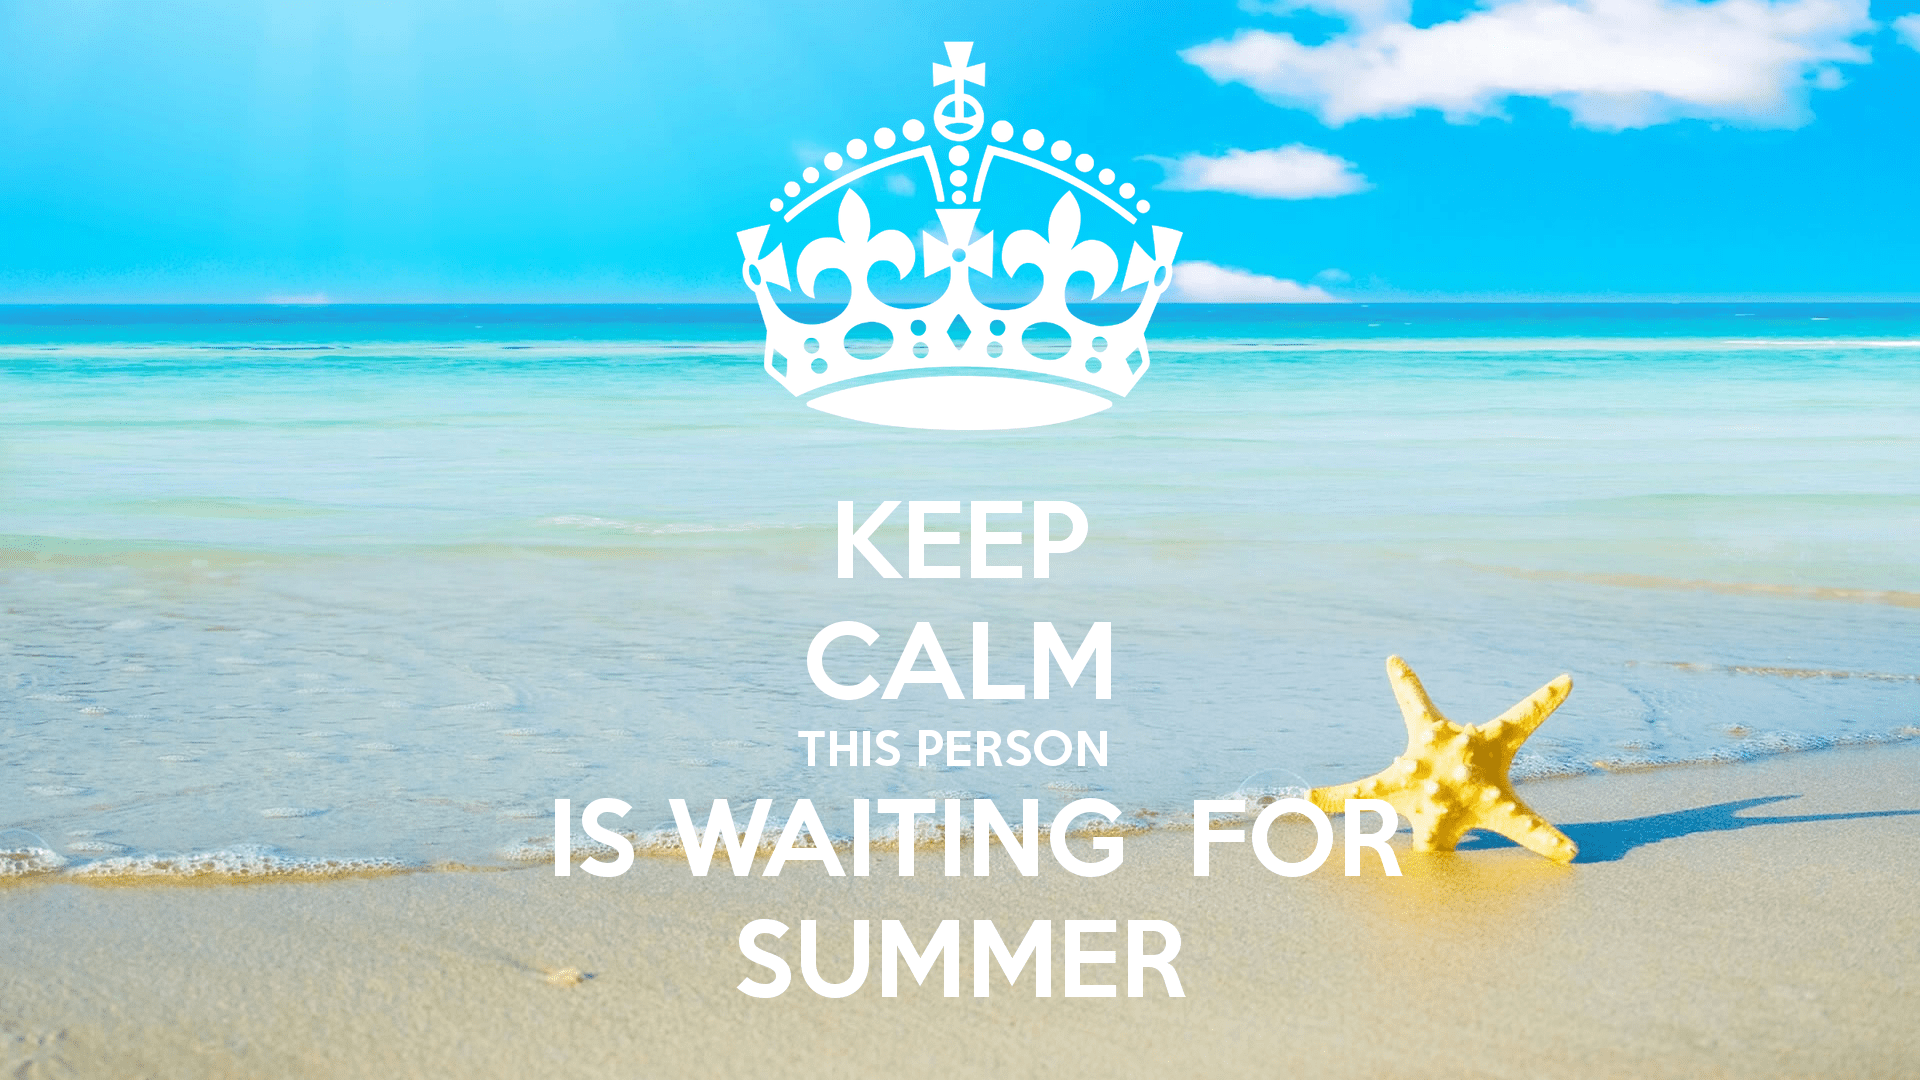 /srv/www/fitfashion wordpress/releases/20150429070043/app/wp content/uploads/sites/77/2015/05/Keep Calm this person is waiting for summer